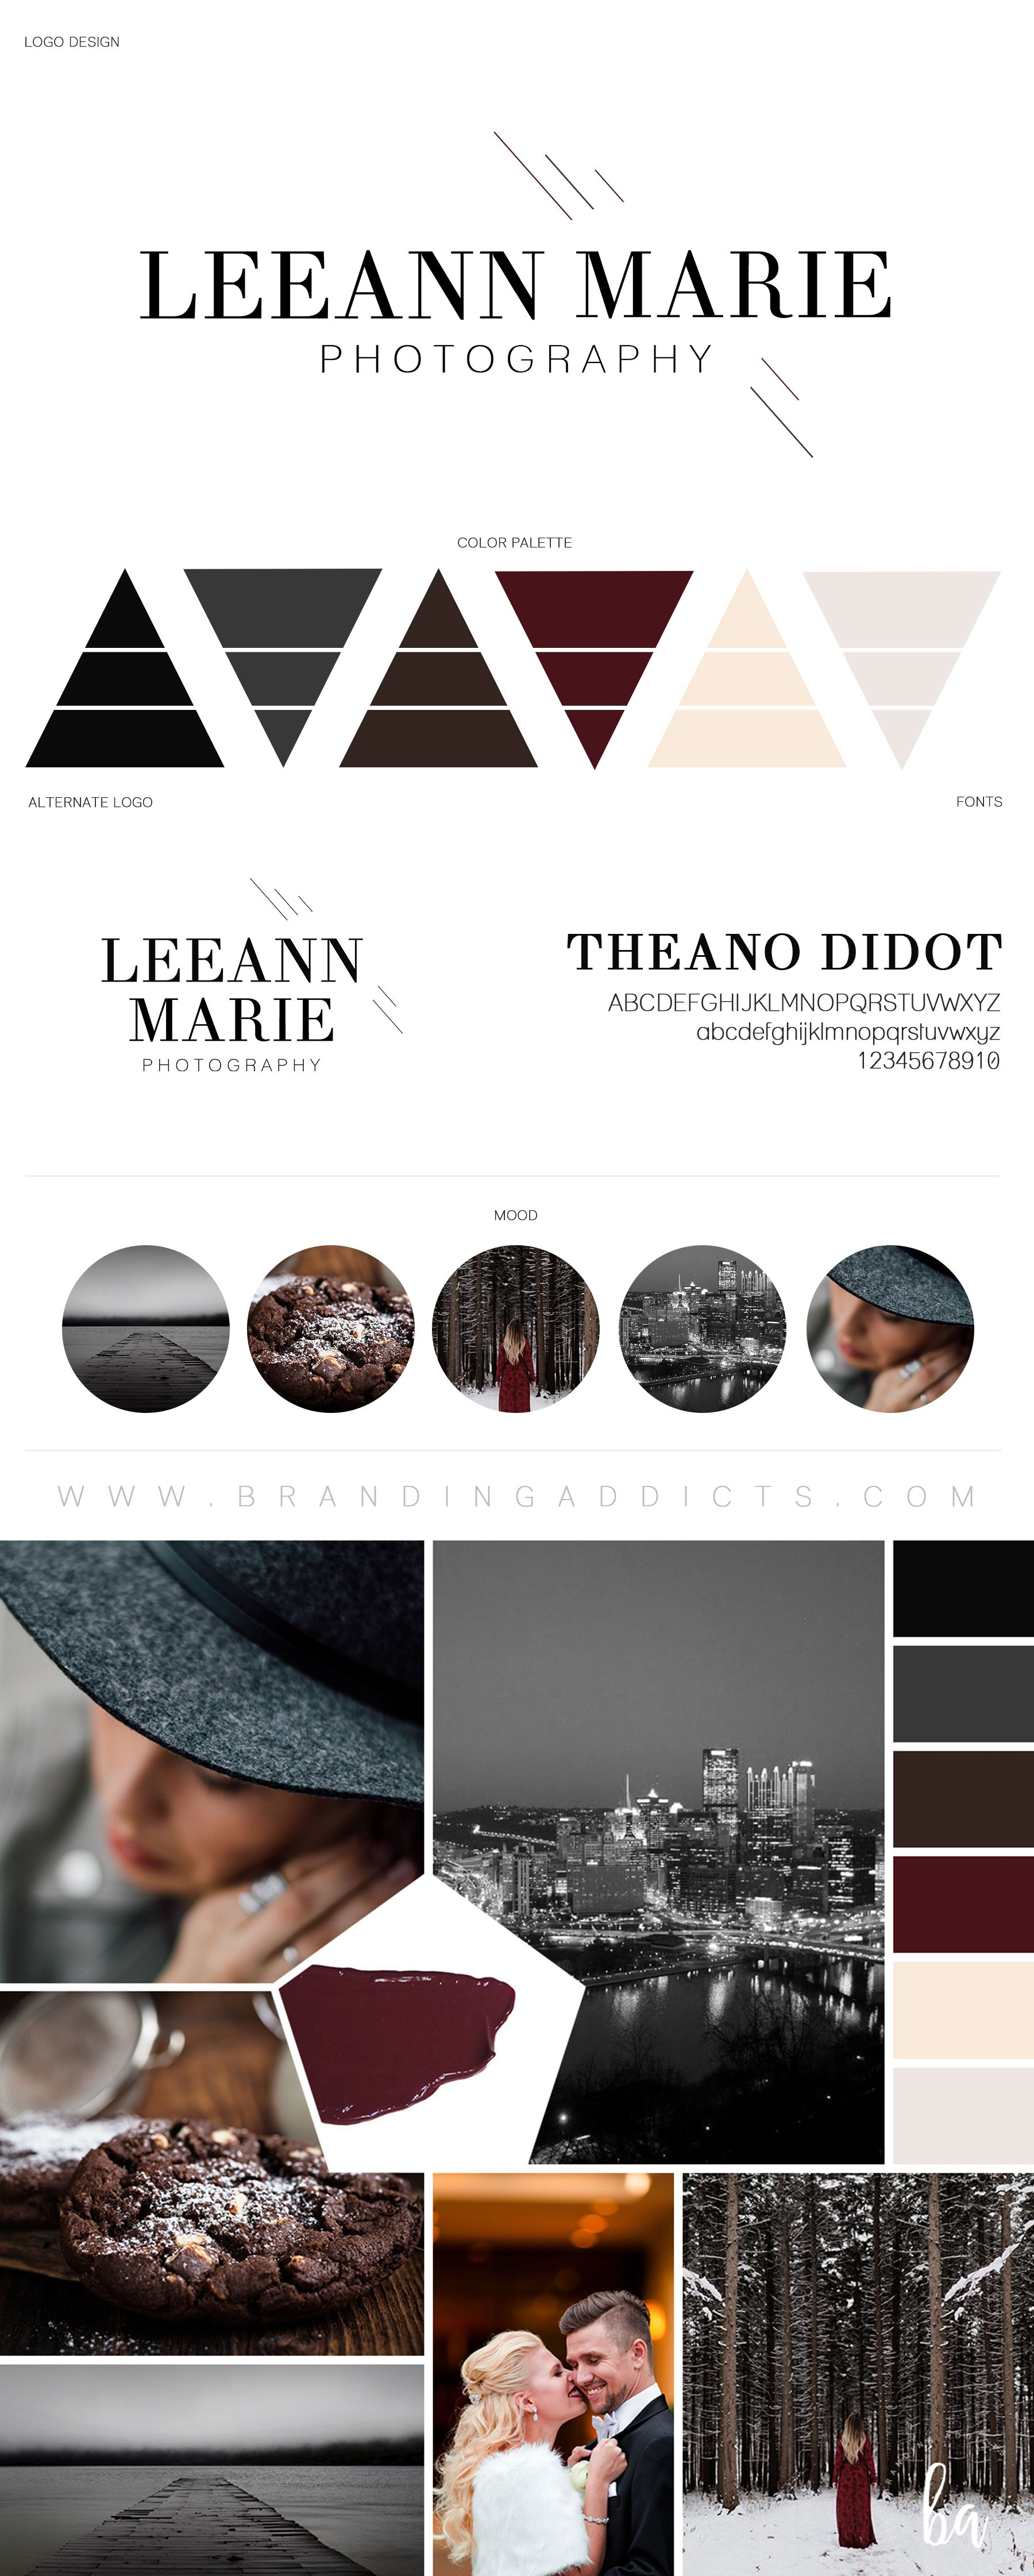 Branding Addicts New Brand Board. A city girl's heart meets the country. Leeann Marie is mixing luxury and class with the beauties of nature. Add in a touch of grey, some divine chocolate brown, a dash of wine, Didot font and you have a beautiful modern branding presence. Professional Business Branding by Designer Laine Napoli. Web Design, Logo, Mood Board, Brand Boards, and more.